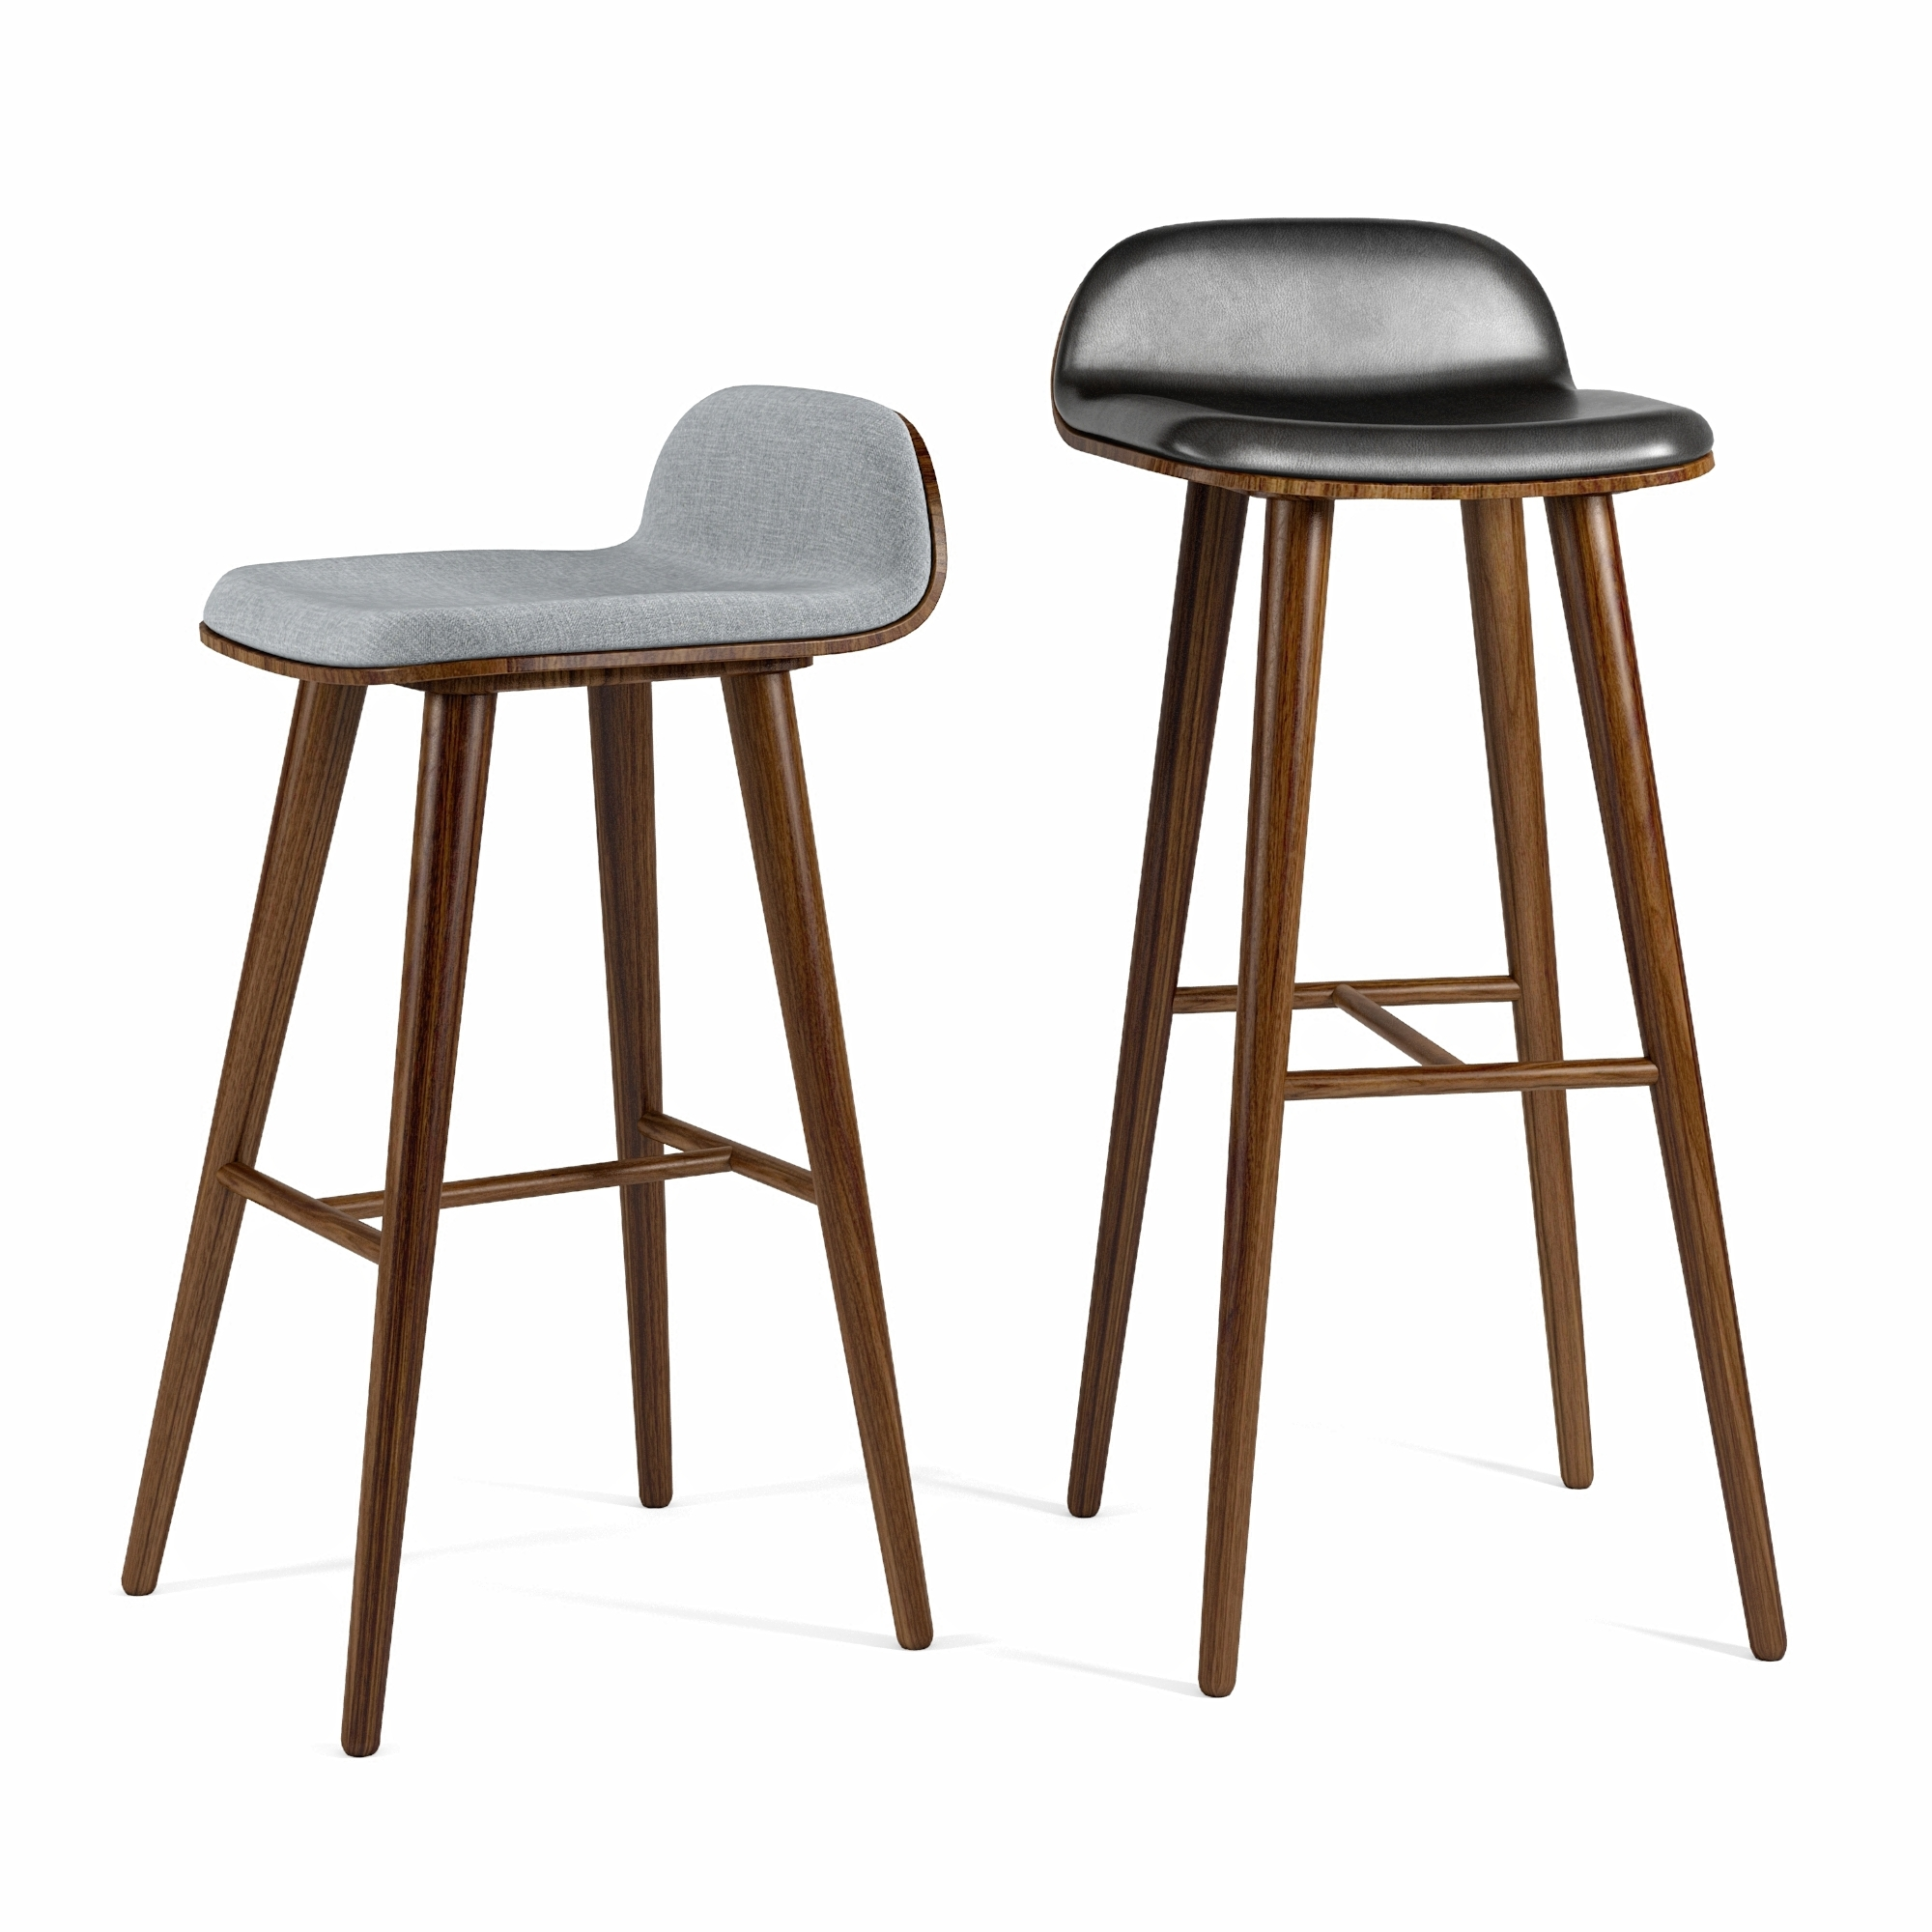 Outstanding Article Sede Bar Stool And Counter Stool Creativecarmelina Interior Chair Design Creativecarmelinacom